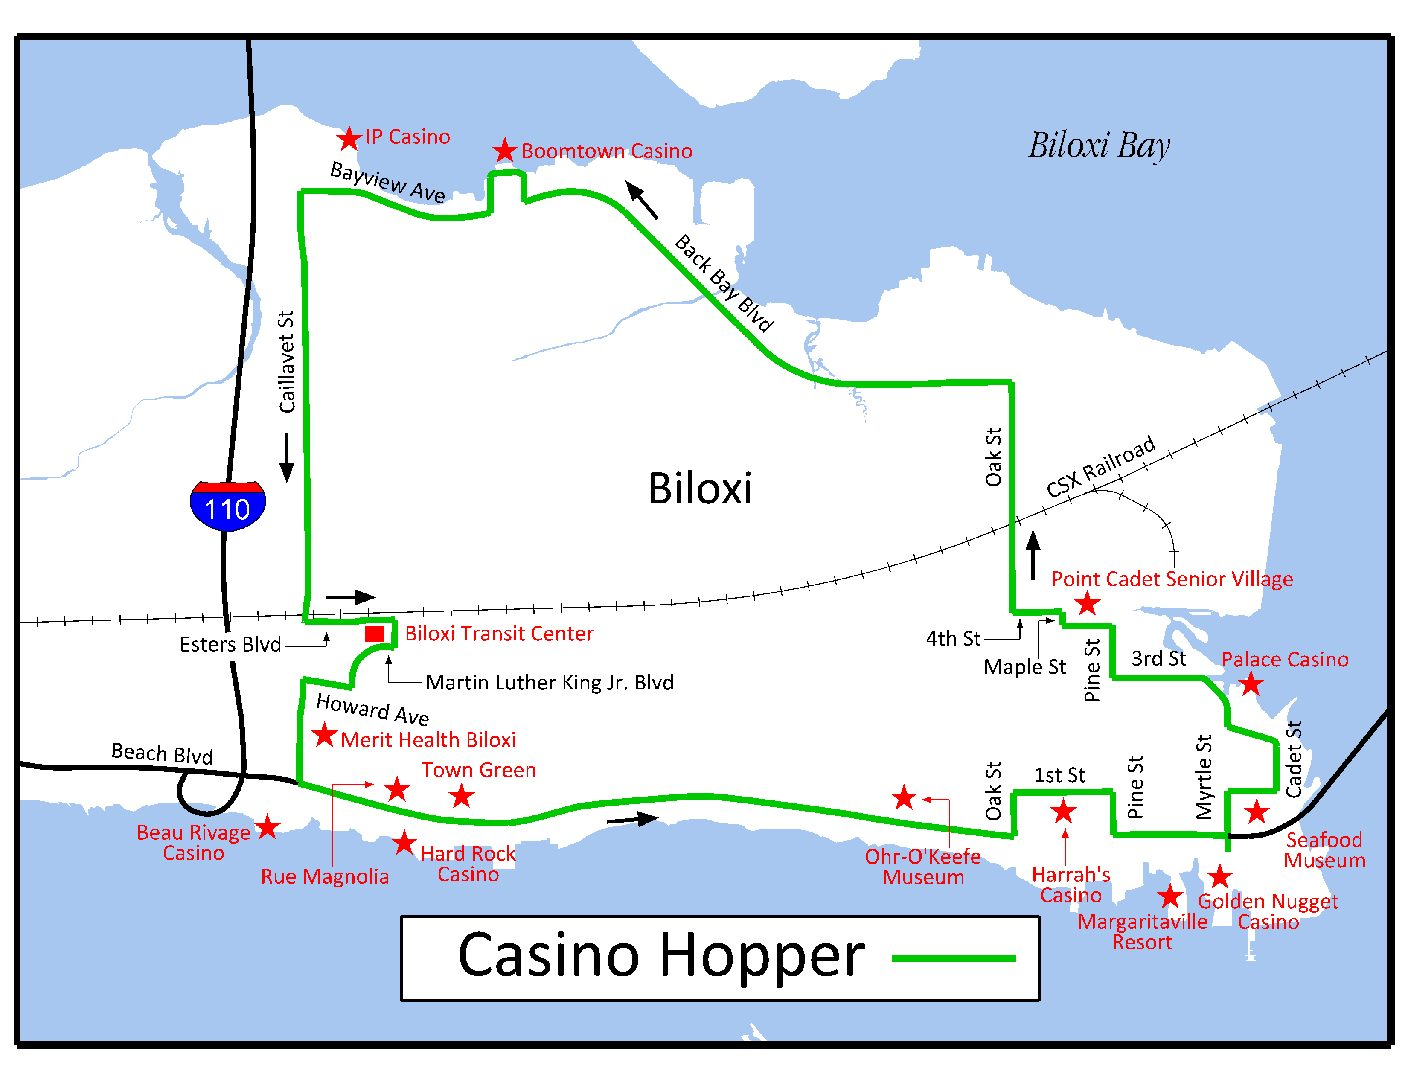 Biloxi casino map